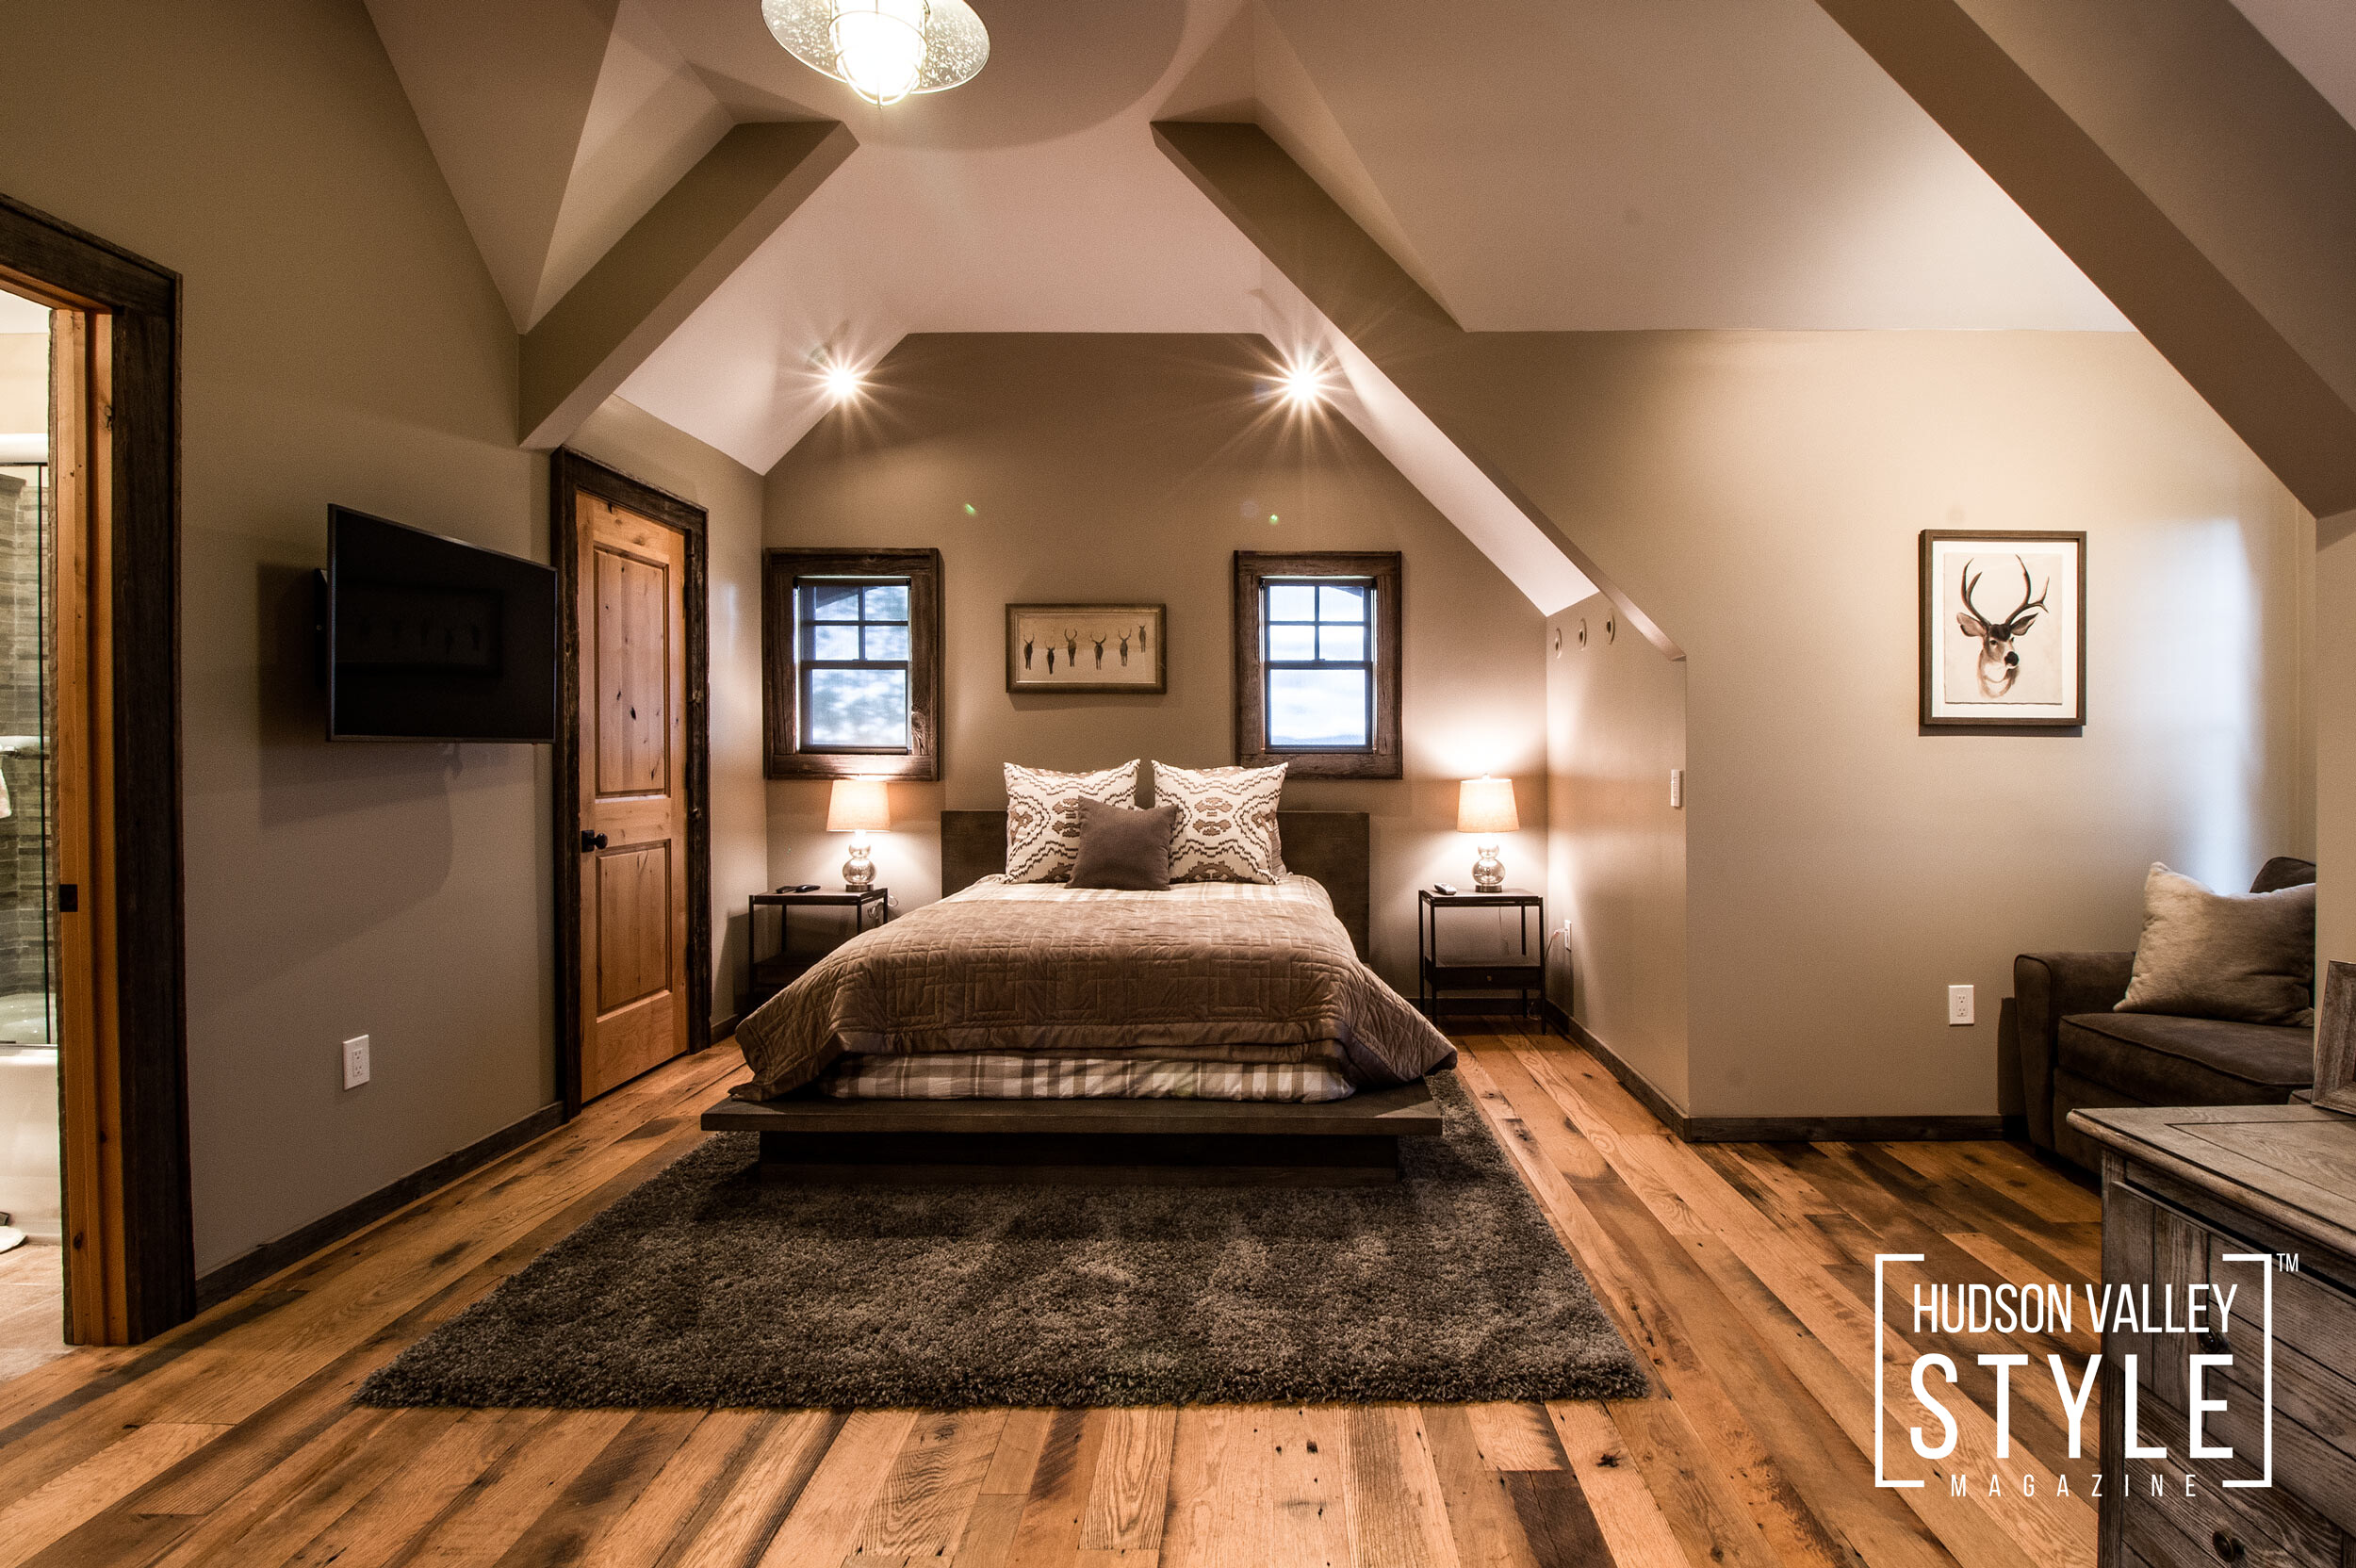 How to Create a Rustic Lodge Vibe in Your Hudson Valley Home in 5 Simple Steps - Hudson Valley Style Living with Kei Kullberg - Photo Courtesy of Duncan Avenue Group